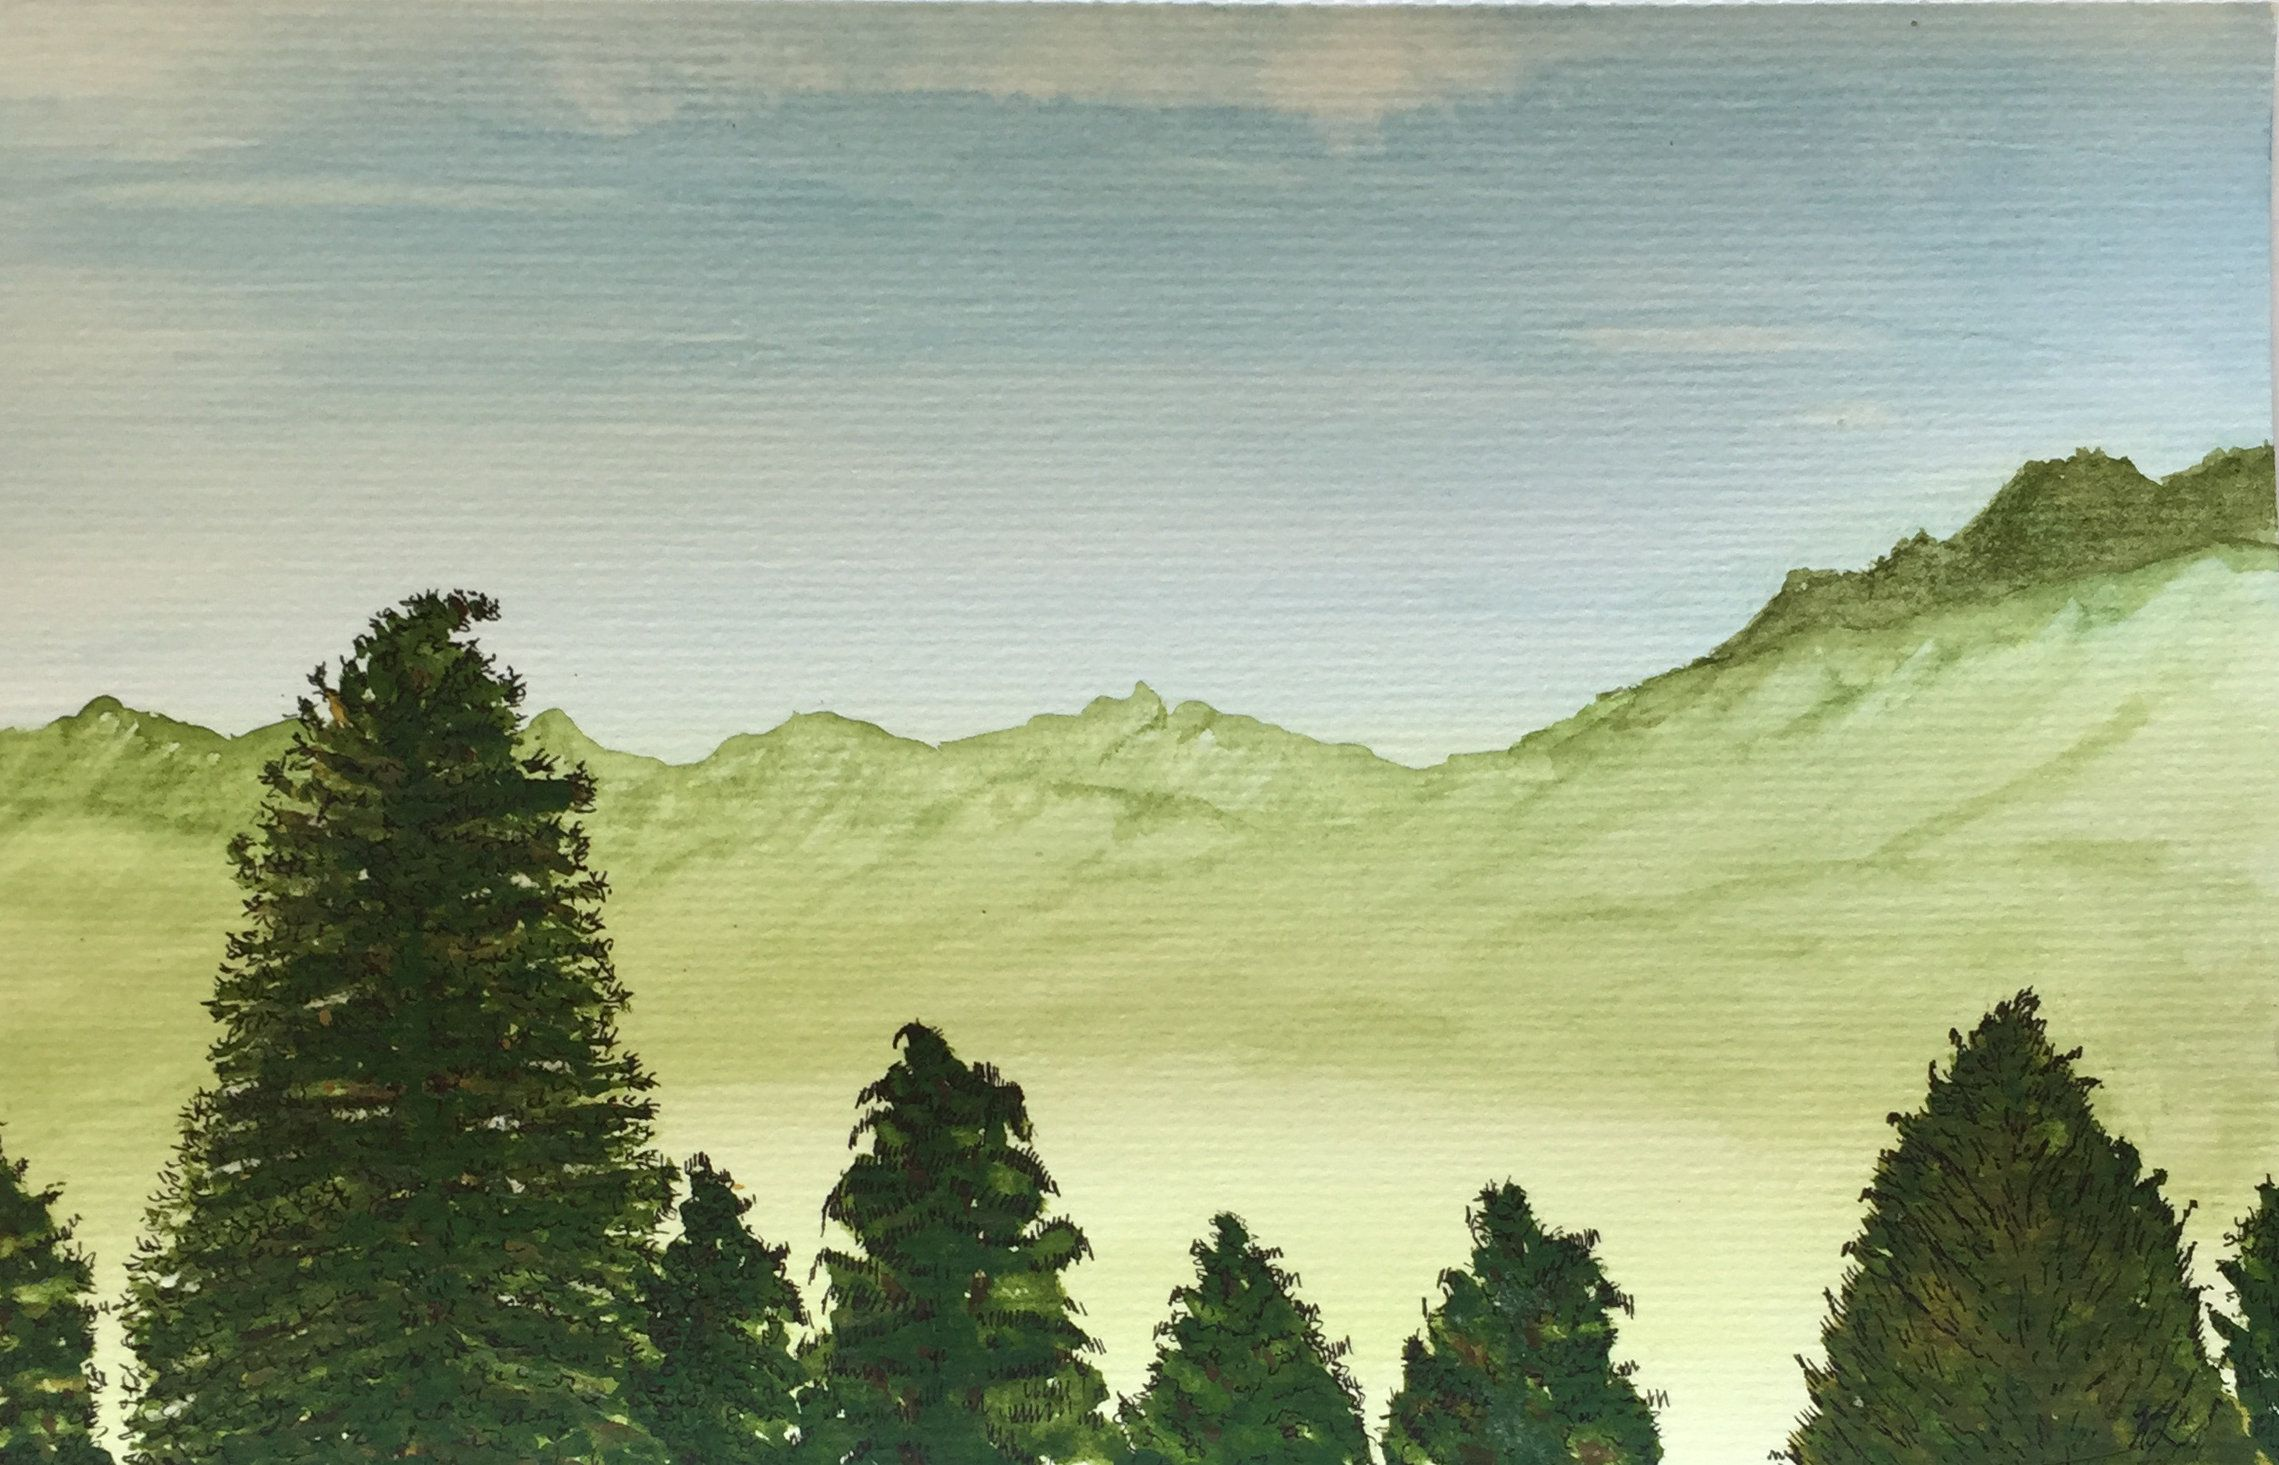 Majestic Trees Watercolor Pine Trees Green Mountains Peaceful Etsy Watercolor Trees Mountain Landscape Watercolor